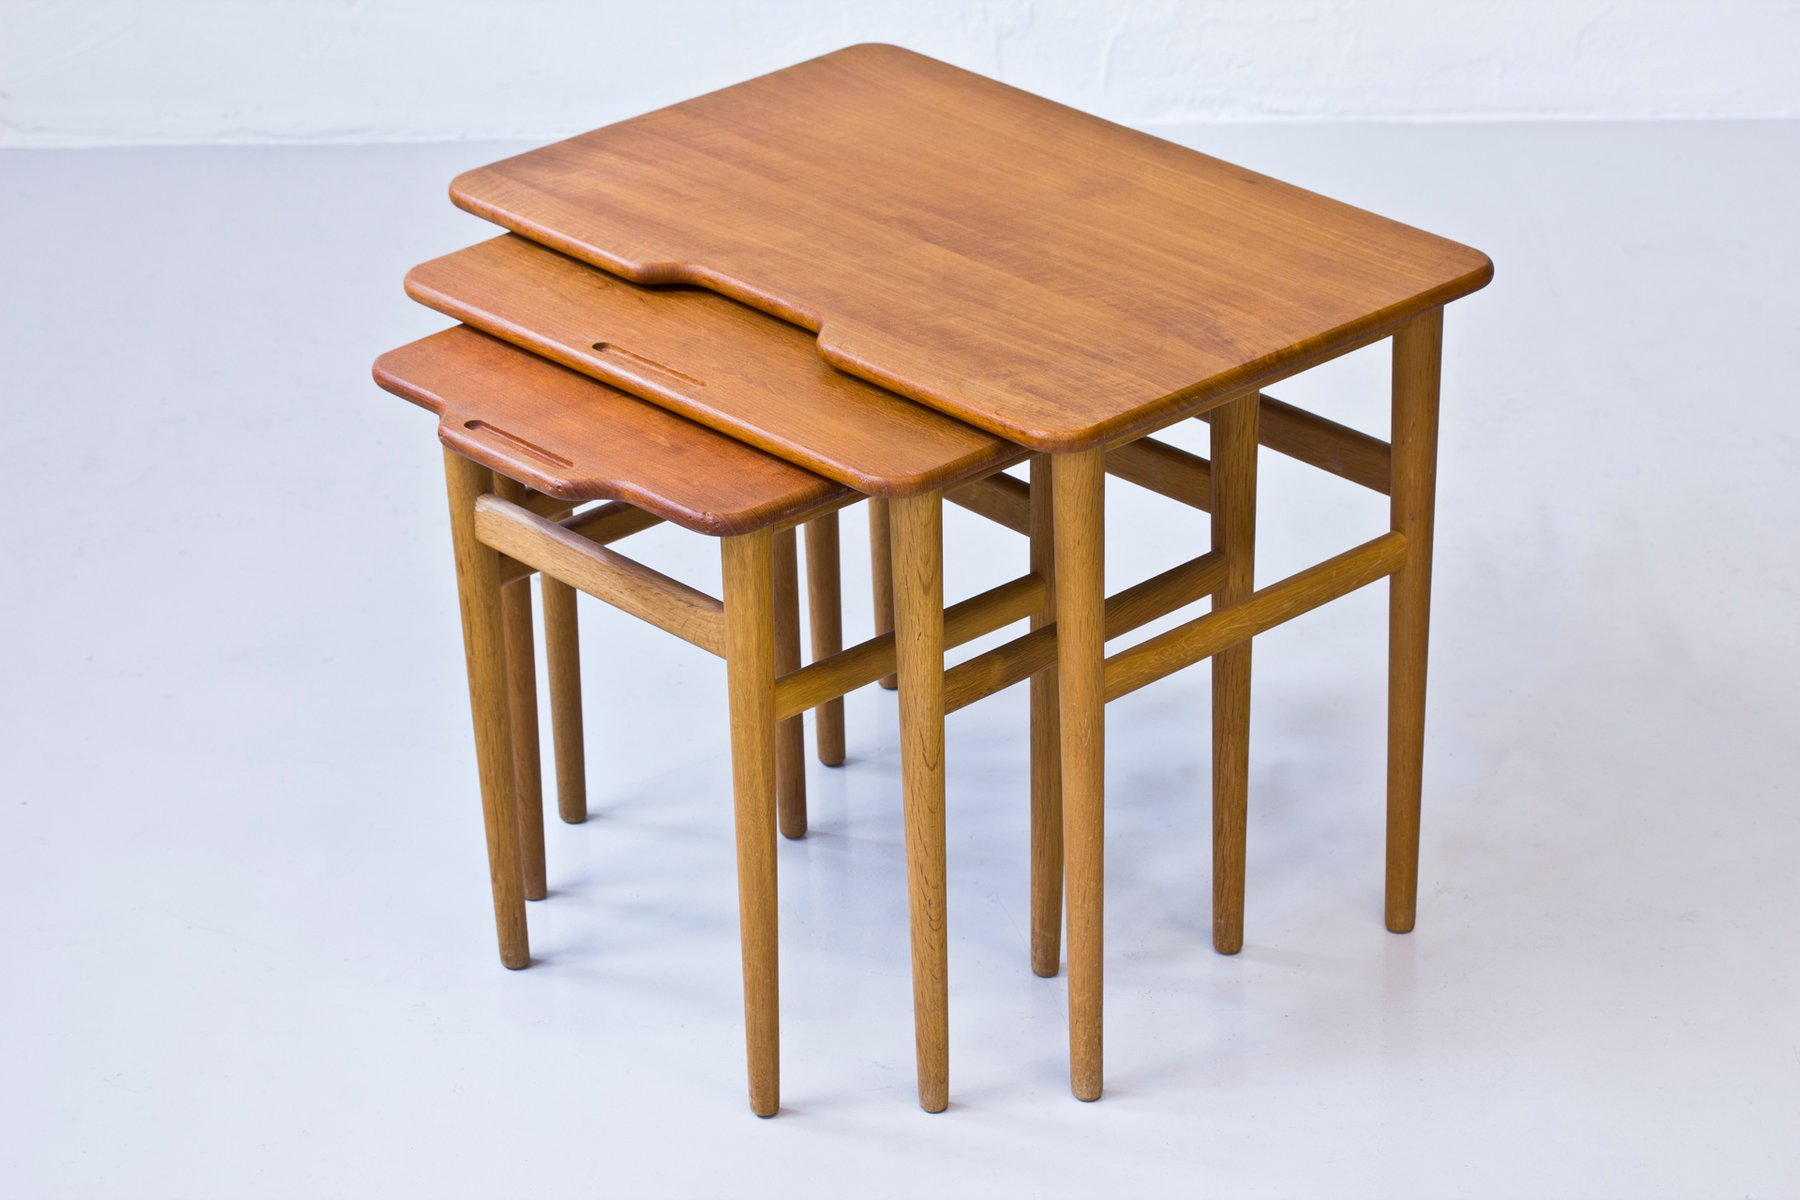 Vintage danish teak and oak nesting tables by kurt